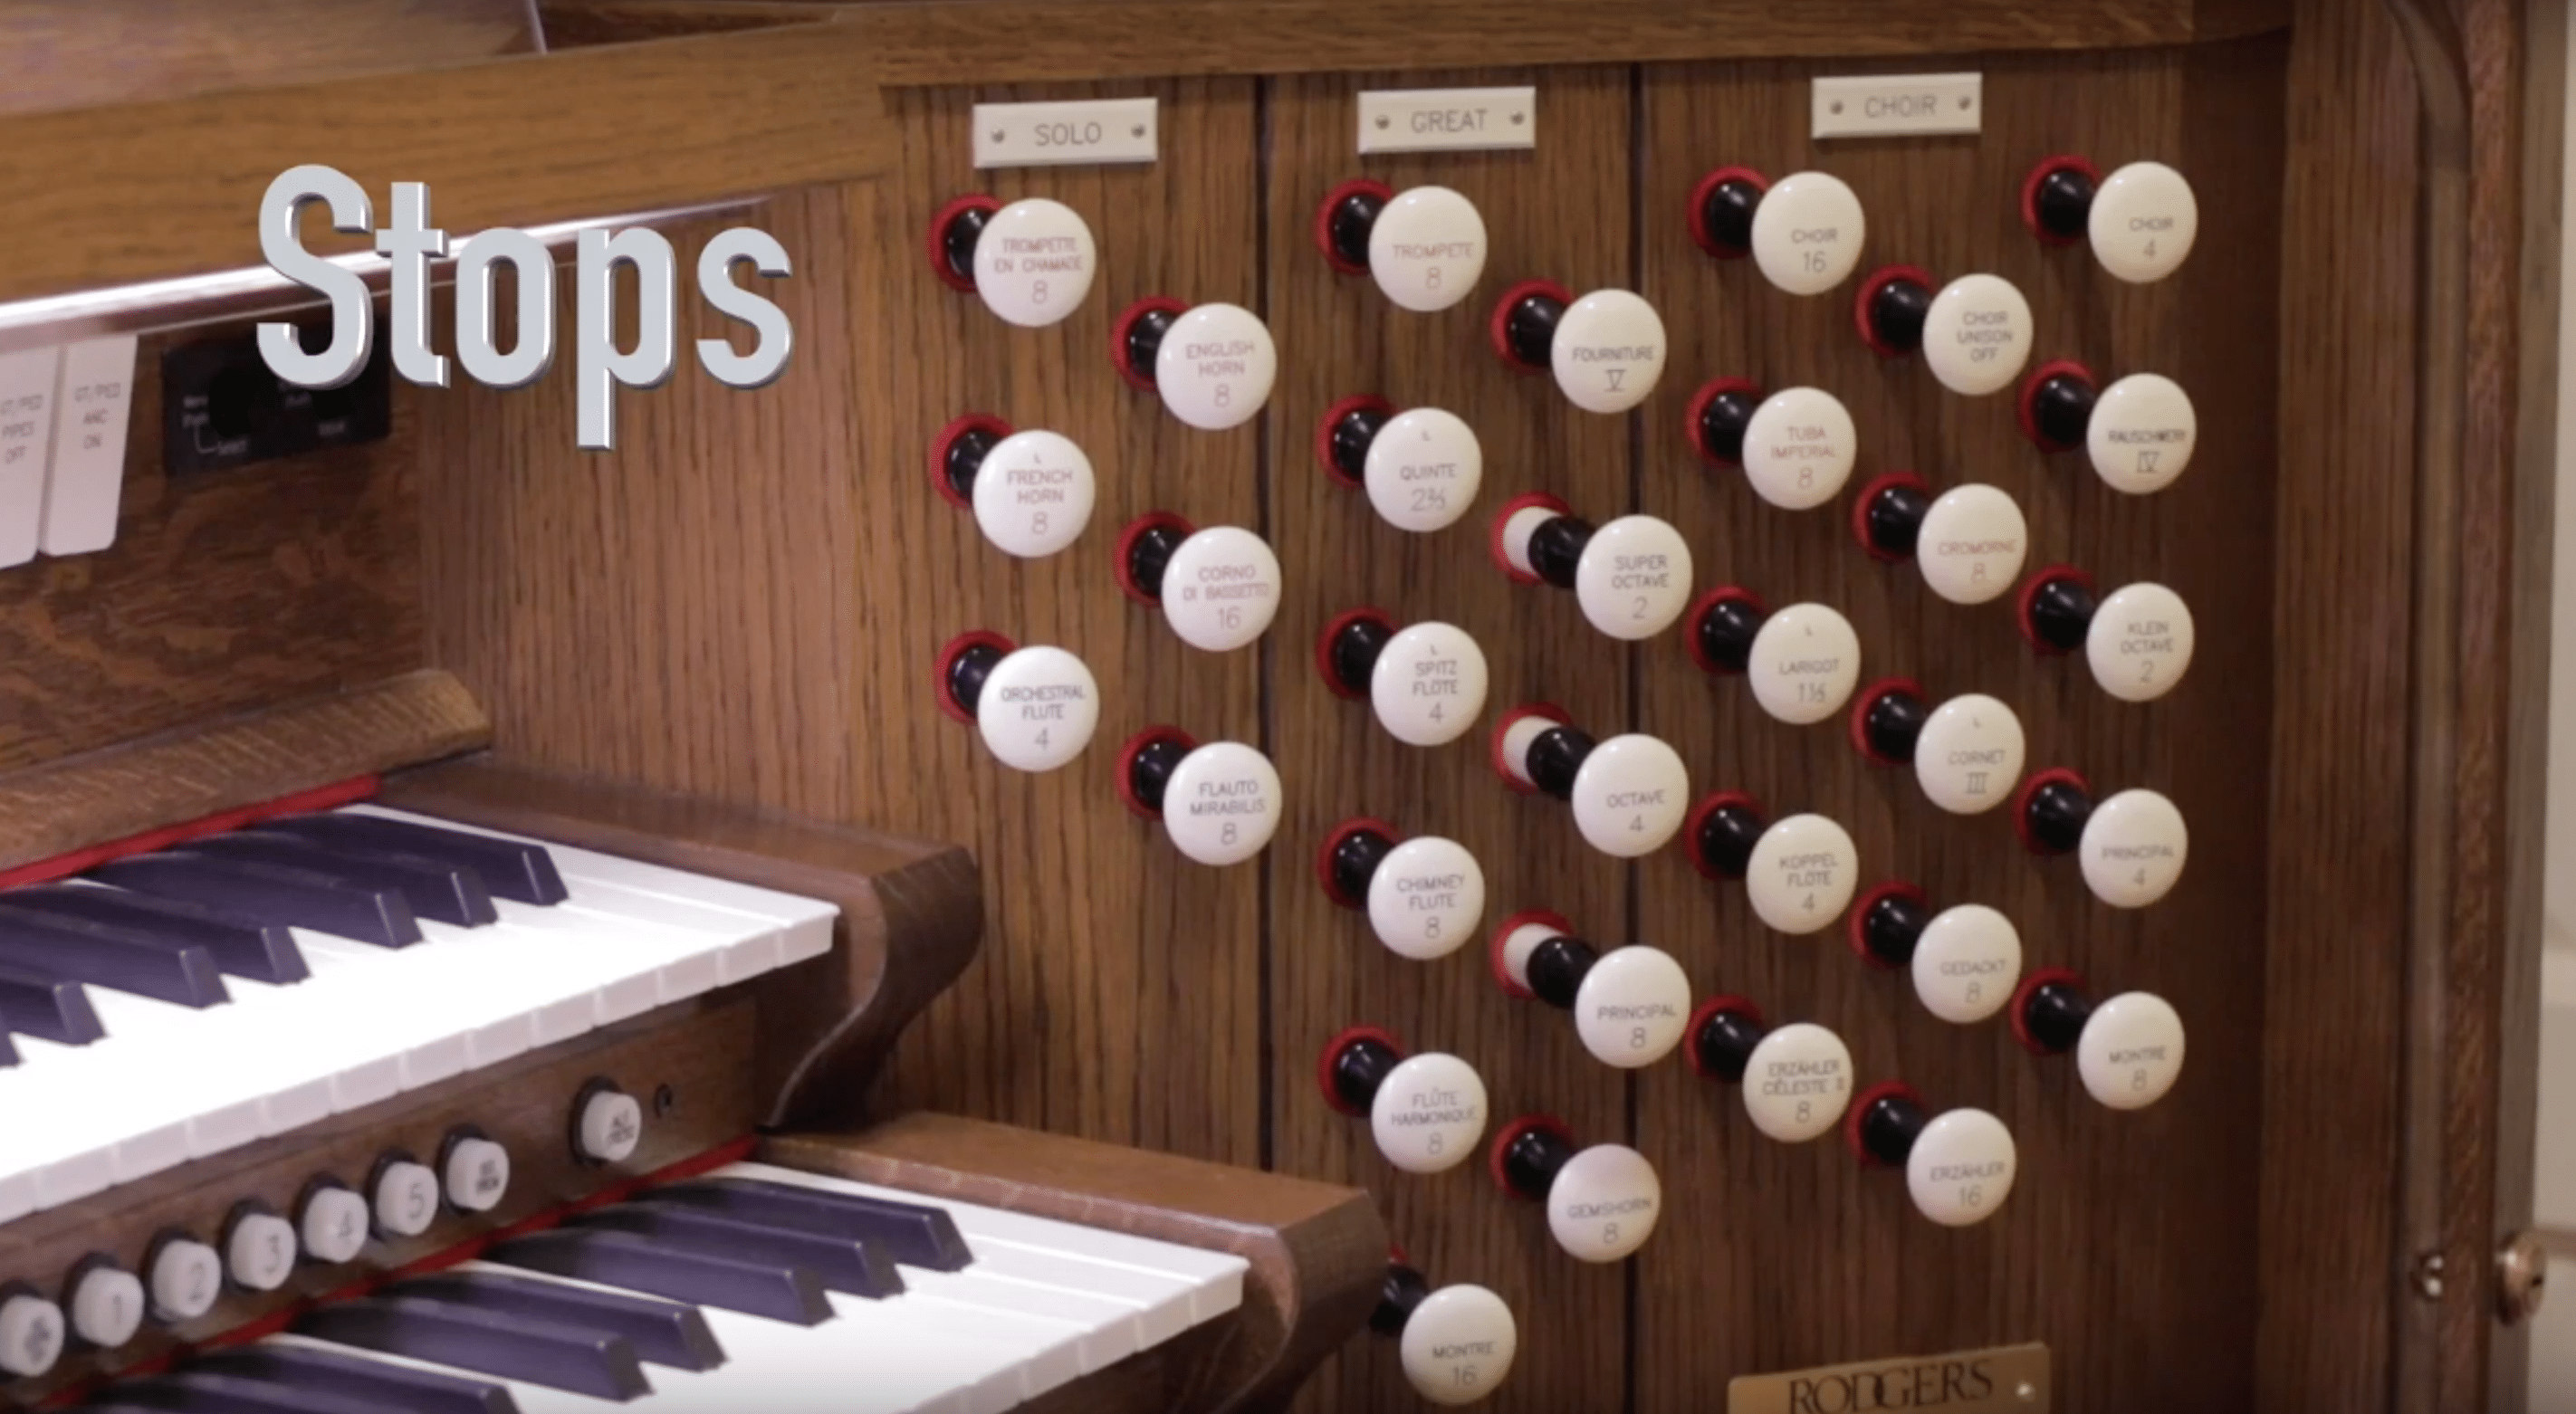 Organ stops organize the division of pipes